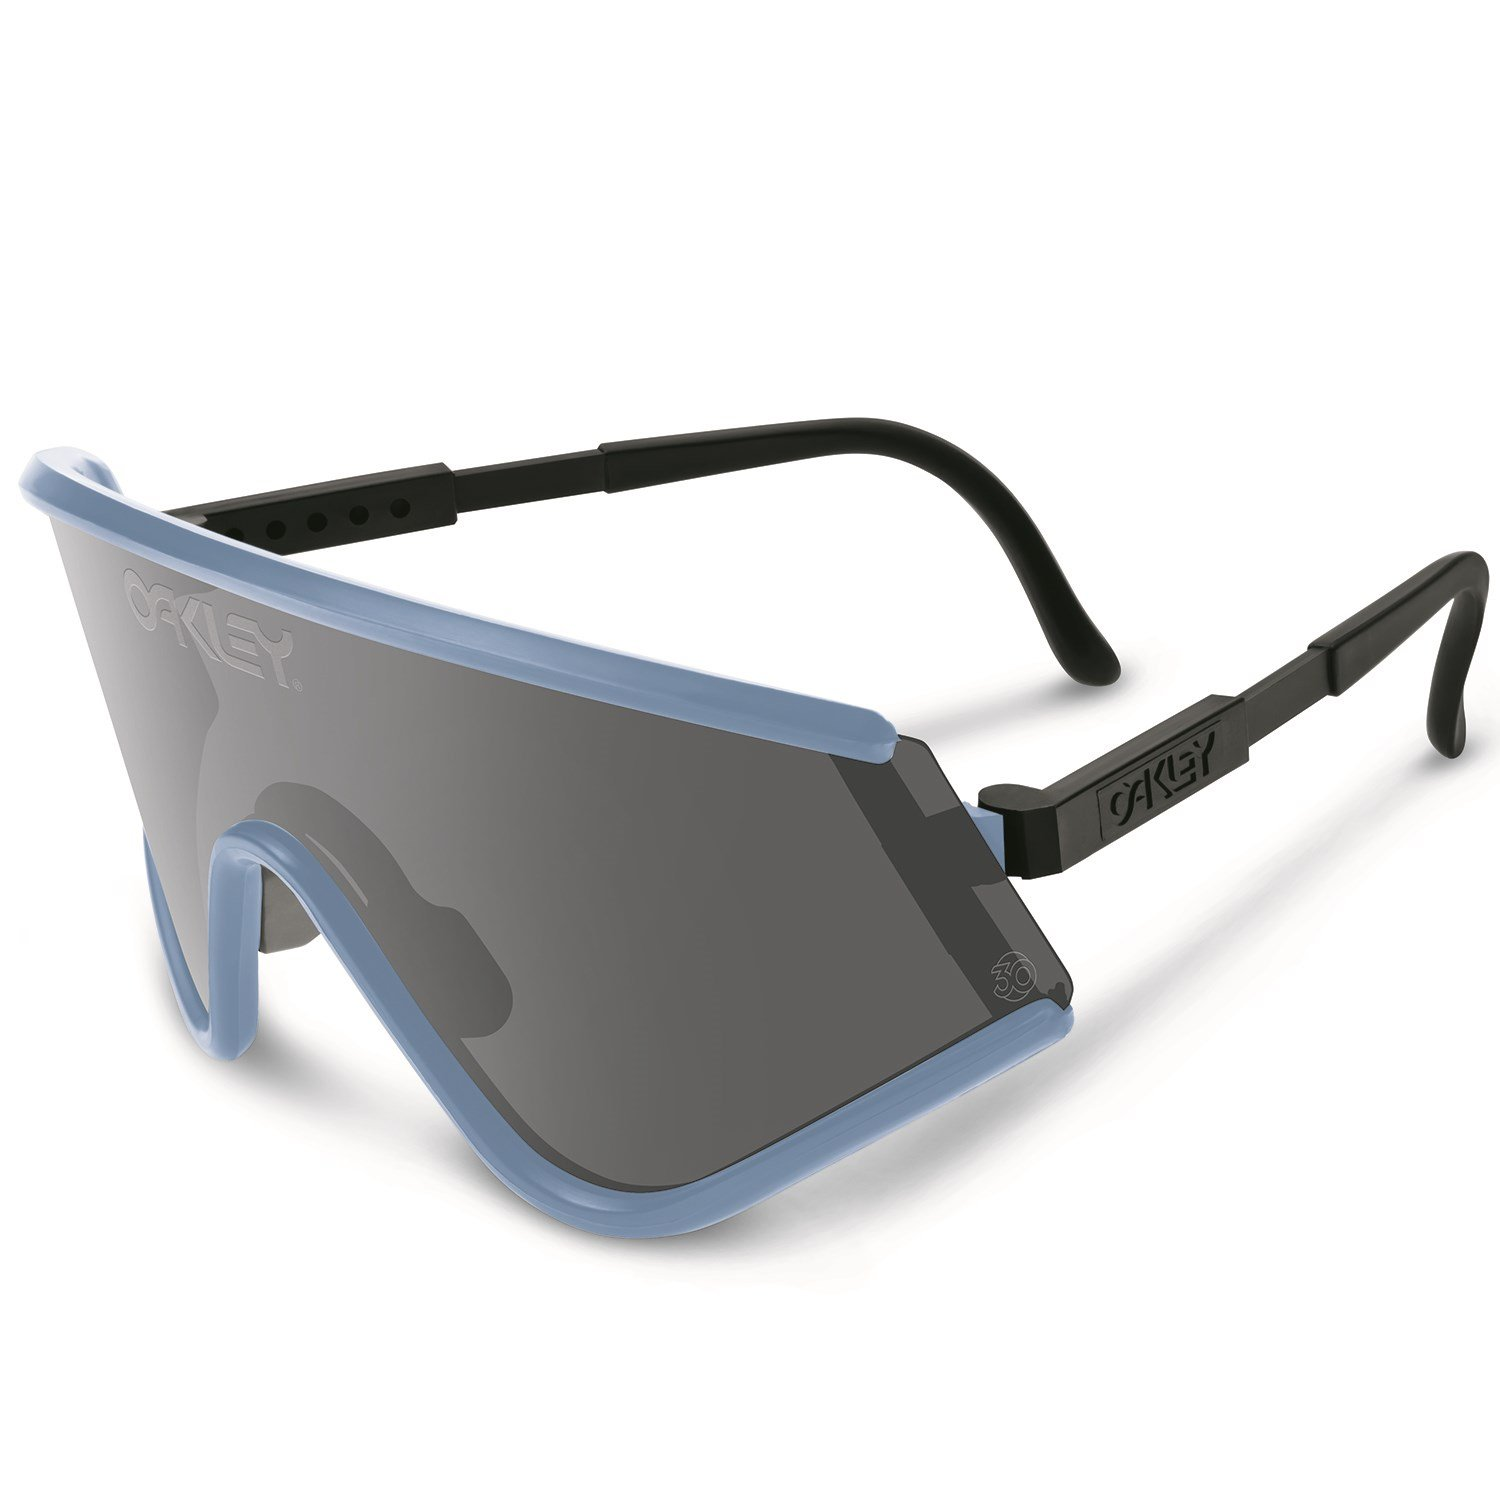 oakley goggle sunglasses  oakley eyeshade sunglasses blue grey